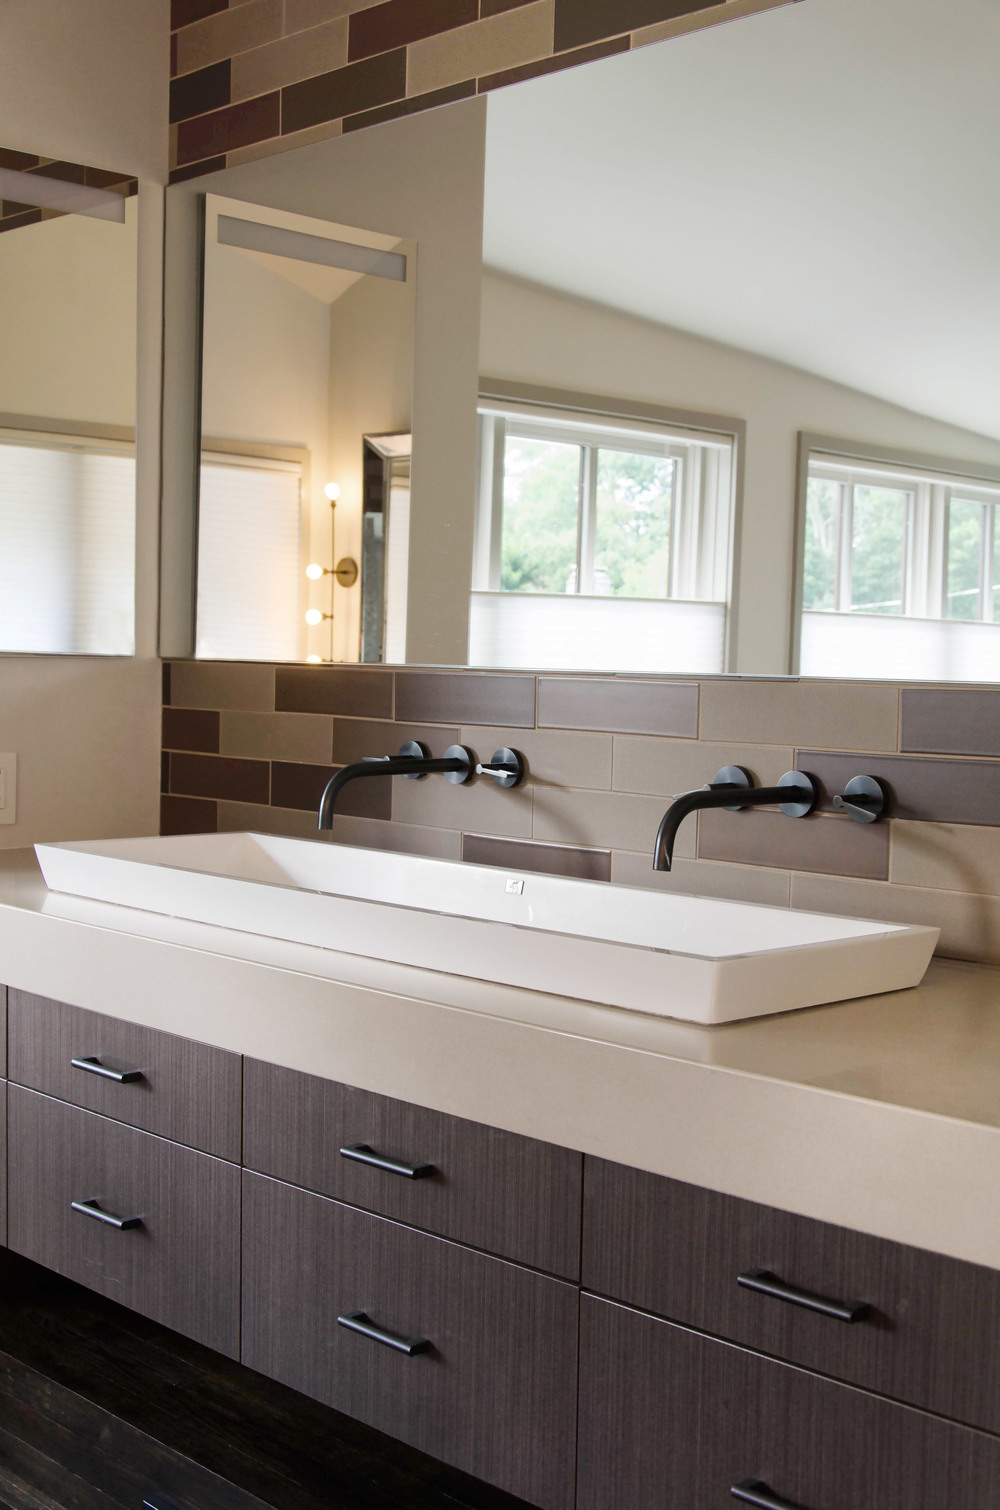 MasterBathroom5-GrayscaleDesign.jpg